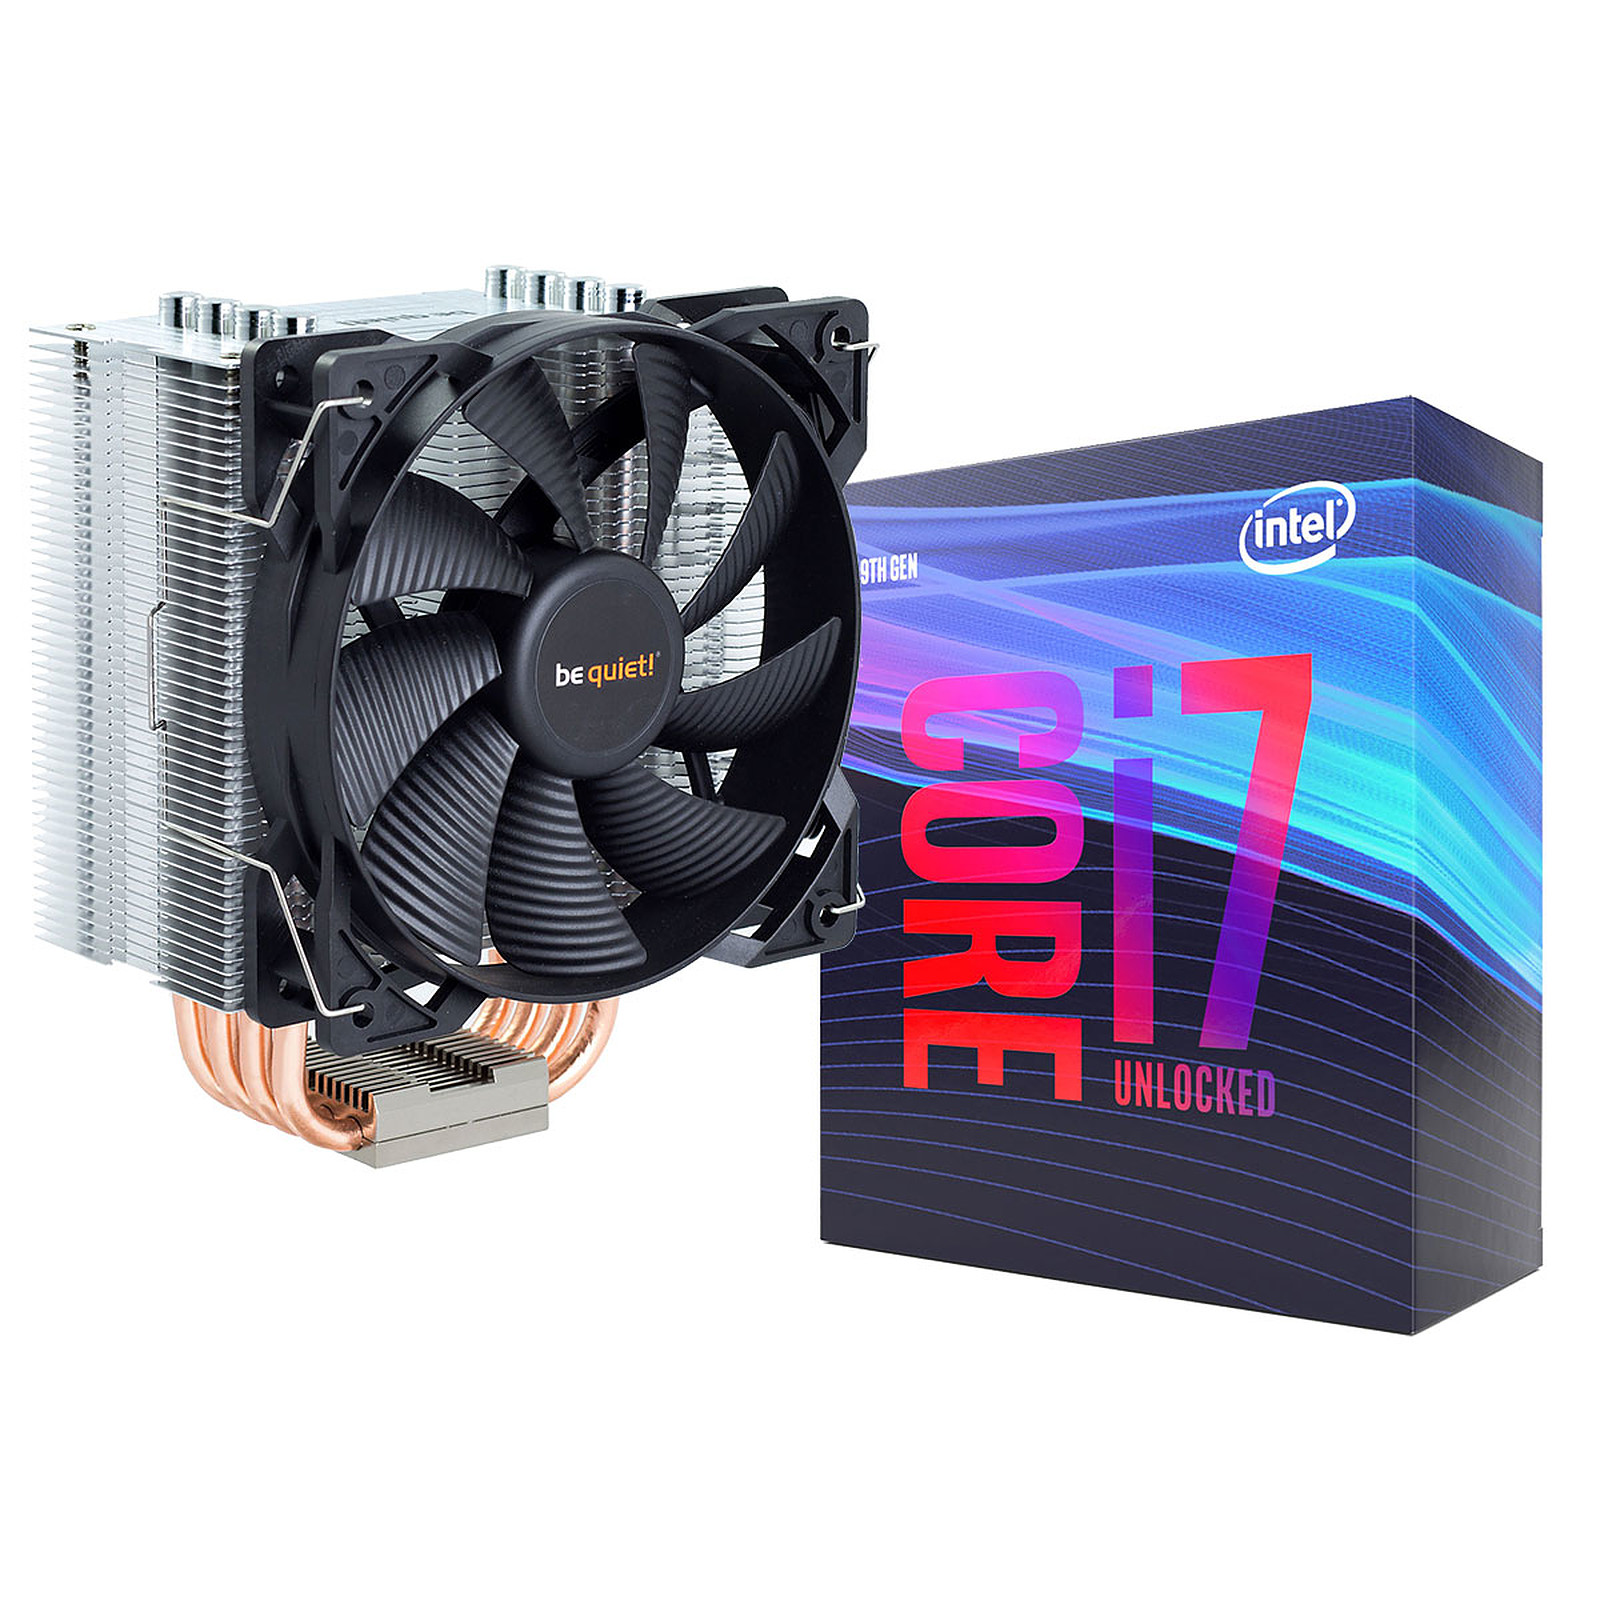 Intel Core i7-9700K + be quiet! Pure Rock